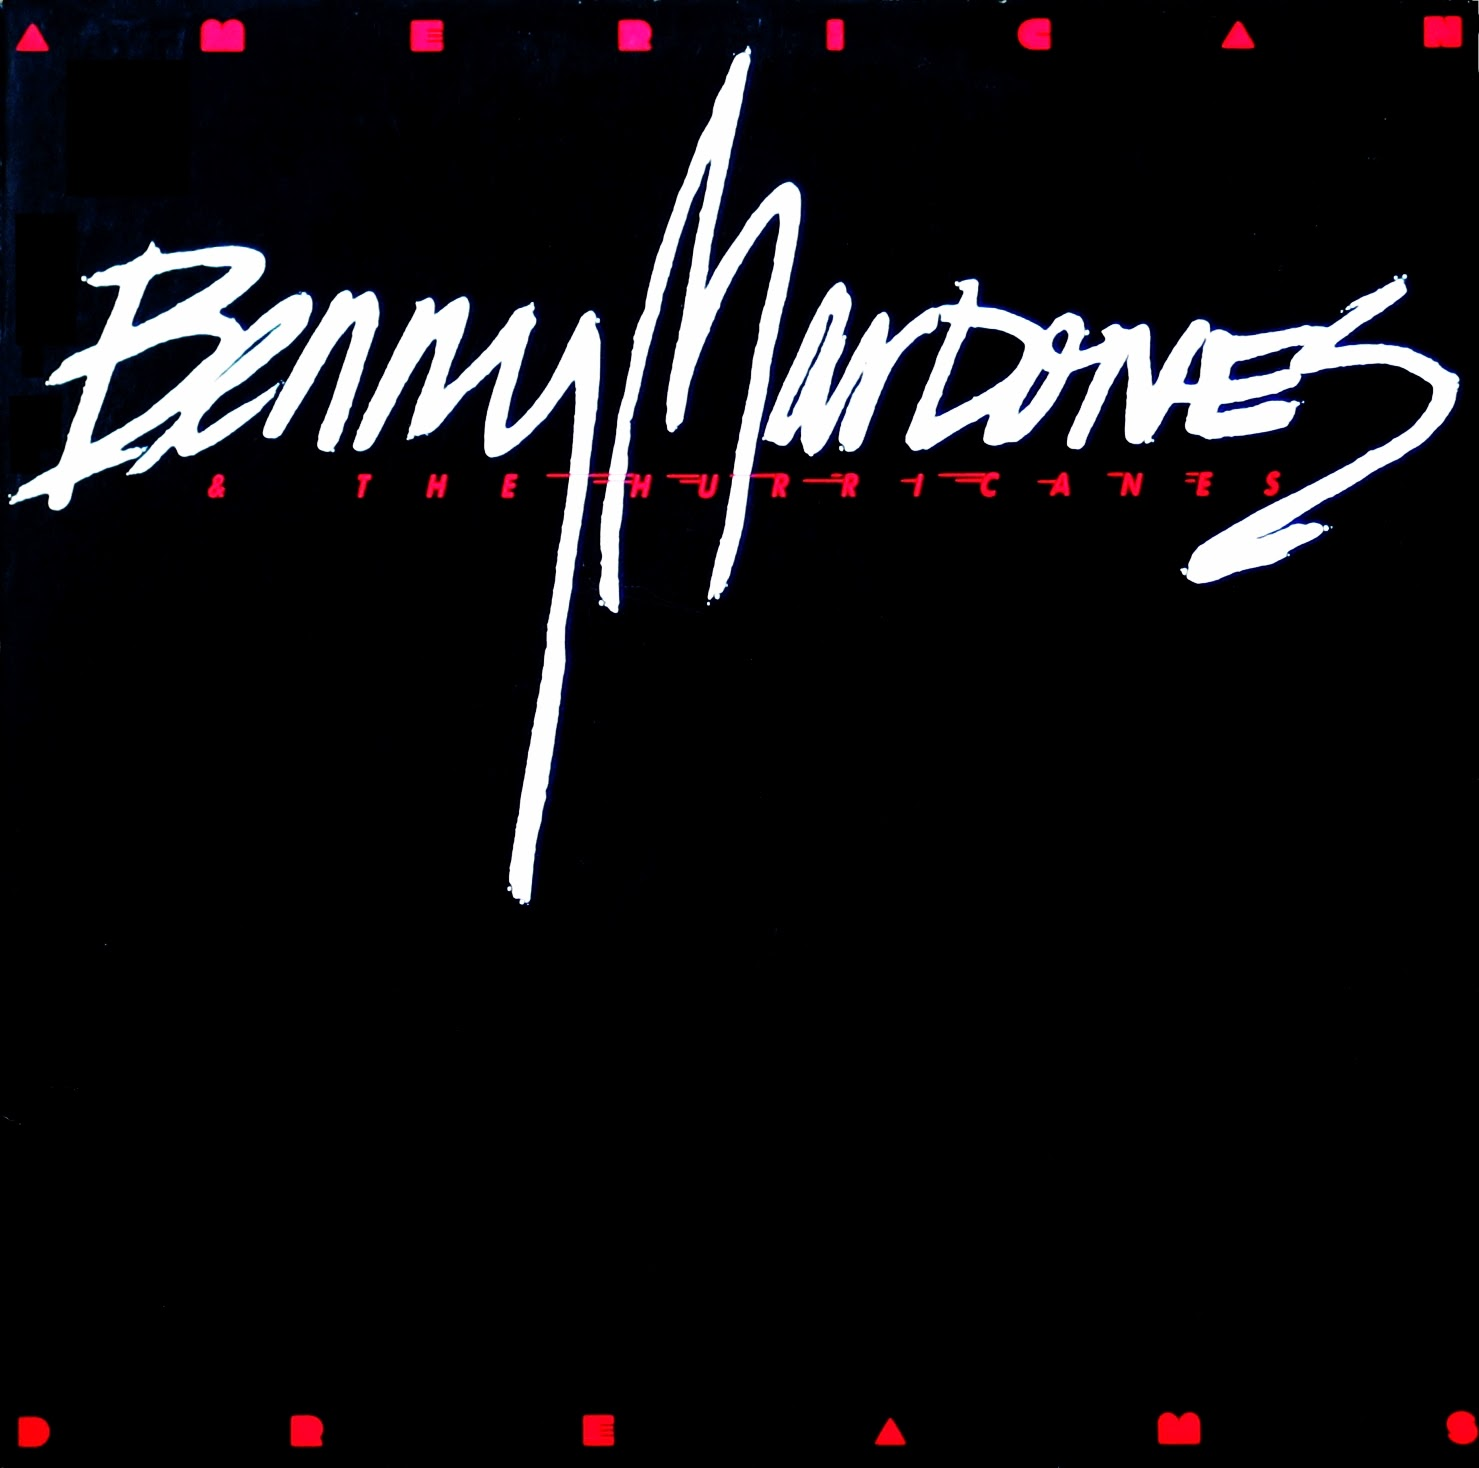 Benny Mardones The Hurricanes American dreams 1986 aor melodic rock